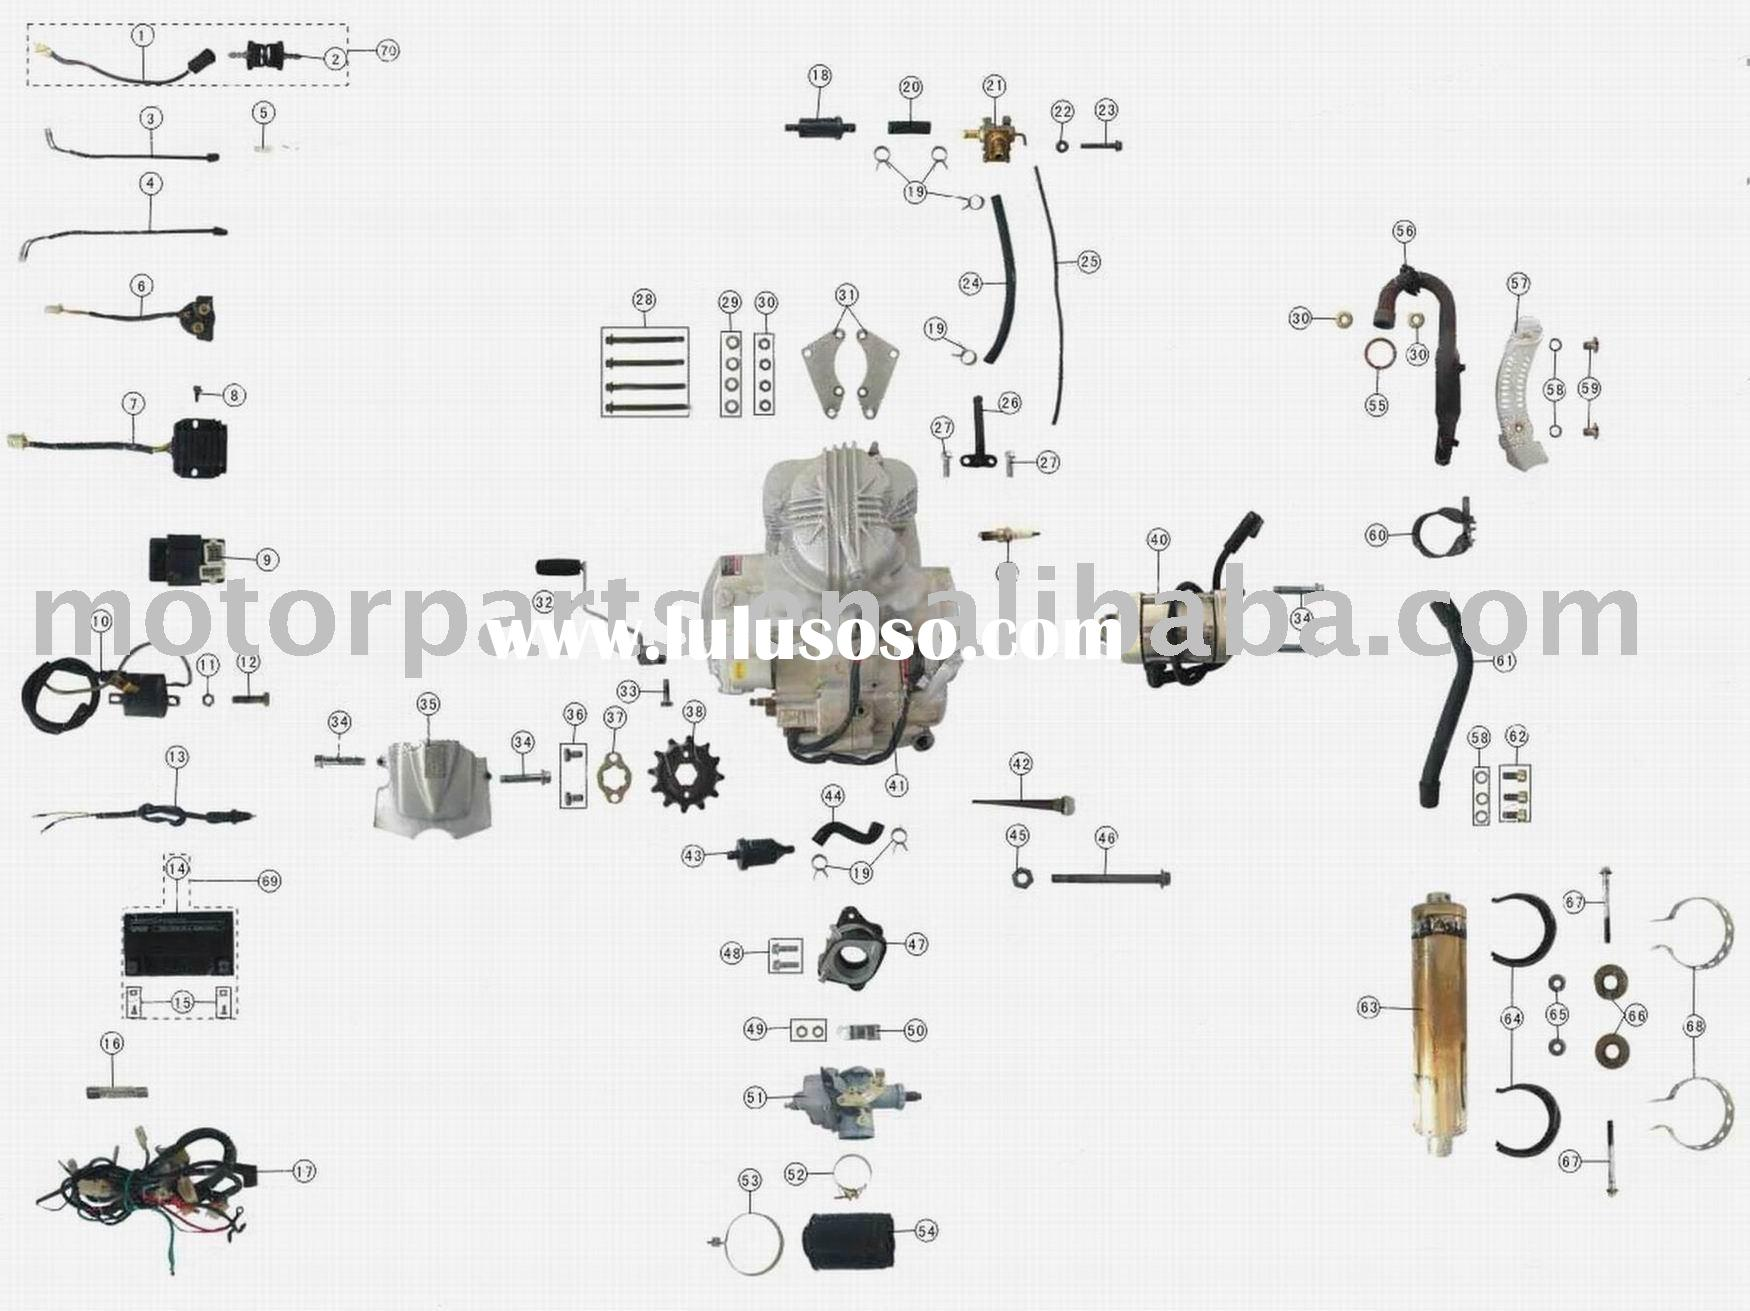 Reparacion Pati es Scooters Electricos moreover Hi Bird 250cc Atv Parts furthermore Kazuma Meerkat 50cc Atv Wiring Diagram in addition Roketa 150 Scooter Wiring Diagram also Showthread. on 50cc scooter motor diagram